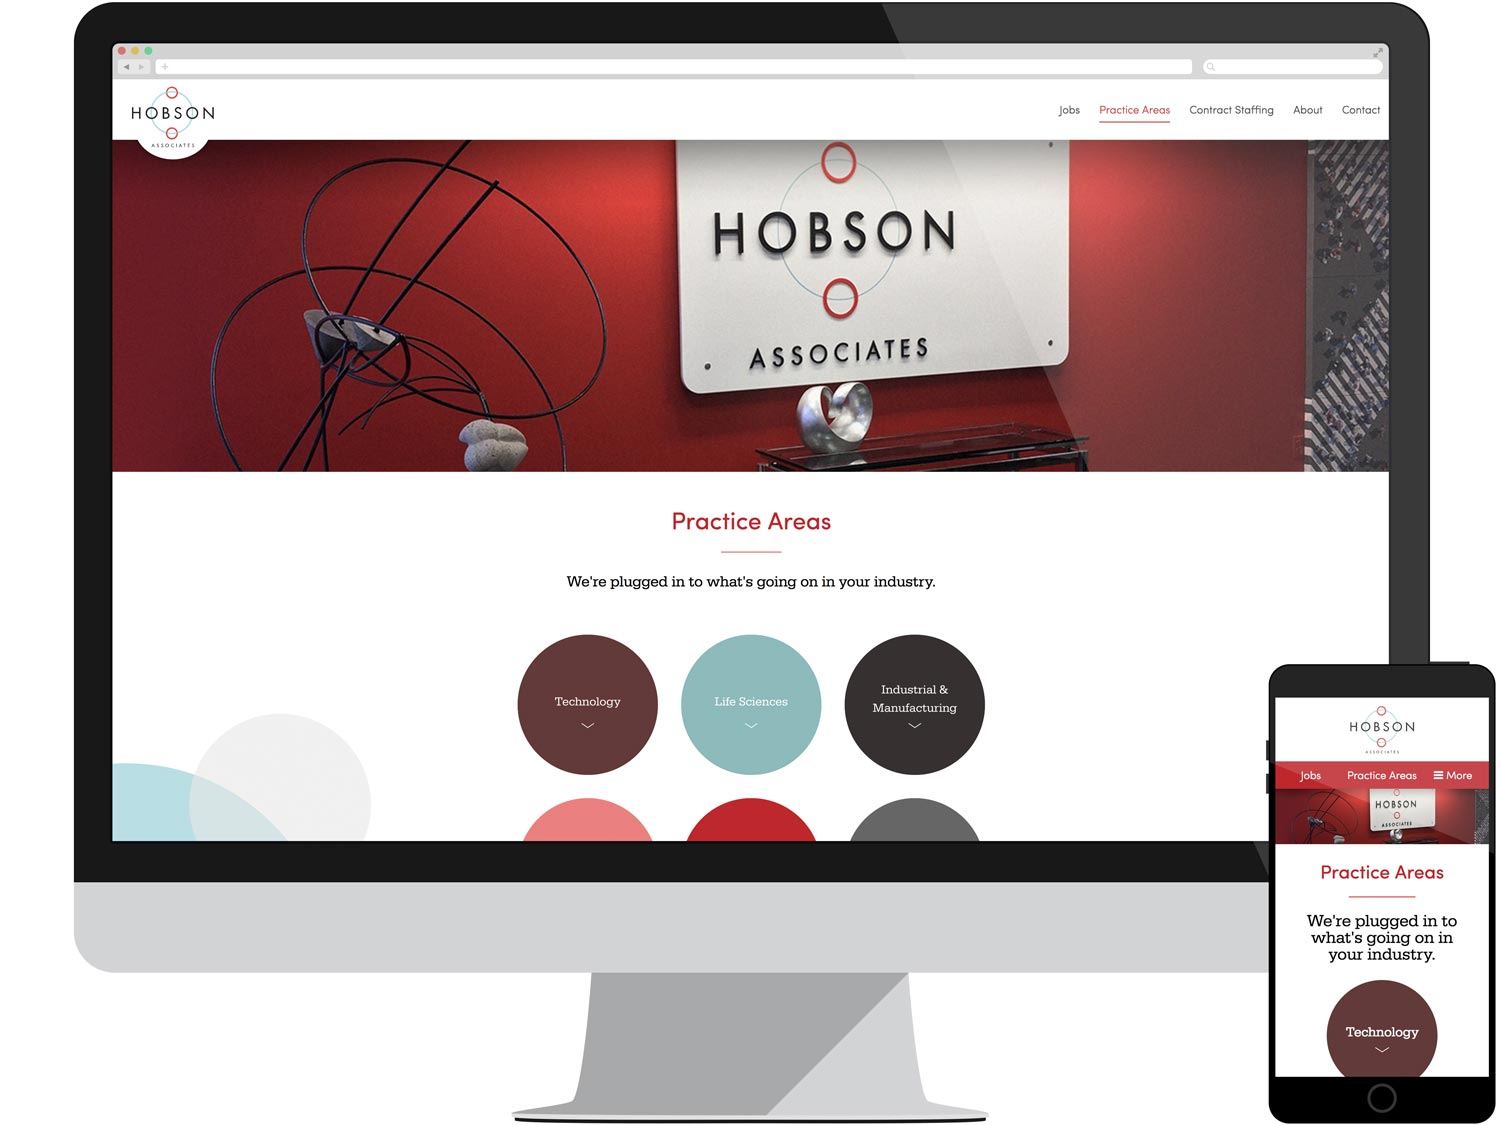 Landing Page - Practice Areas